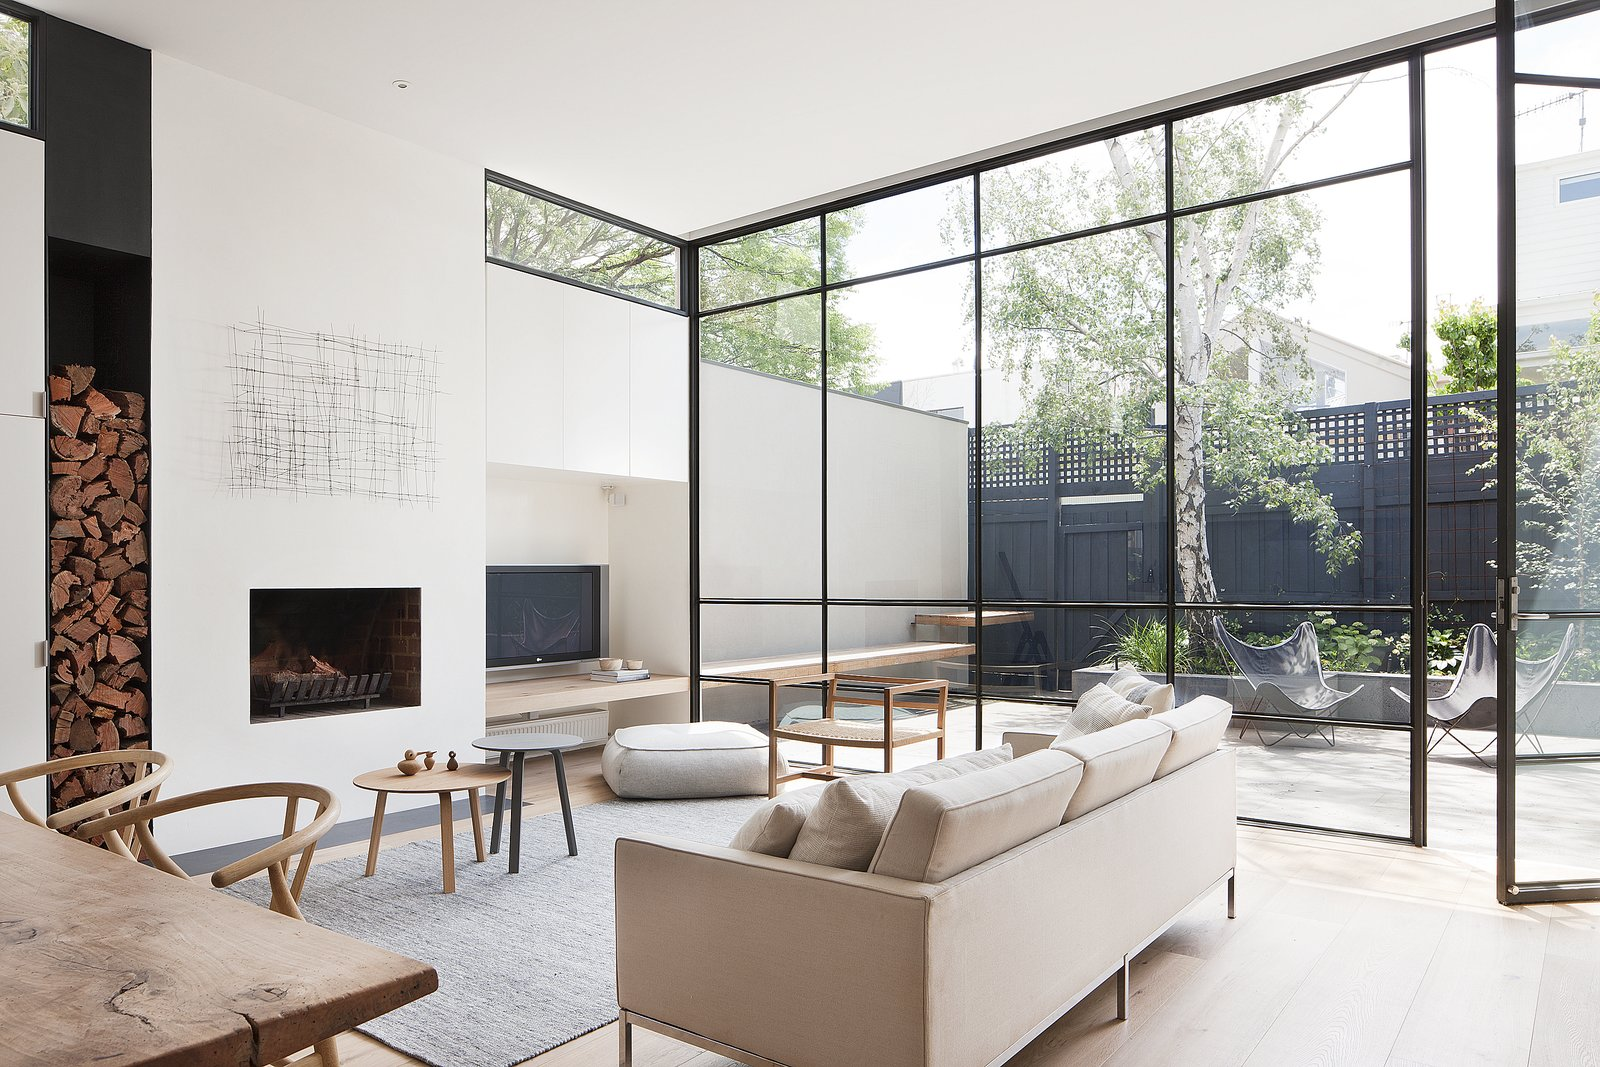 "The designers explain, ""These steel windows played an integral part in making the interior feel larger and more open by blurring the boundaries between the interior and exterior."" A grey Halcyon Lake area rug, an oak chair from MAP, and Hans Wenger Wishbone chairs make for a simple, neutral palette. The painting over the fireplace is by Kate Hendry. Tagged: Living Room, Chair, Sofa, Coffee Tables, Light Hardwood Floor, and Wood Burning Fireplace.  Living Rooms by Lara Deam from Seclusion"